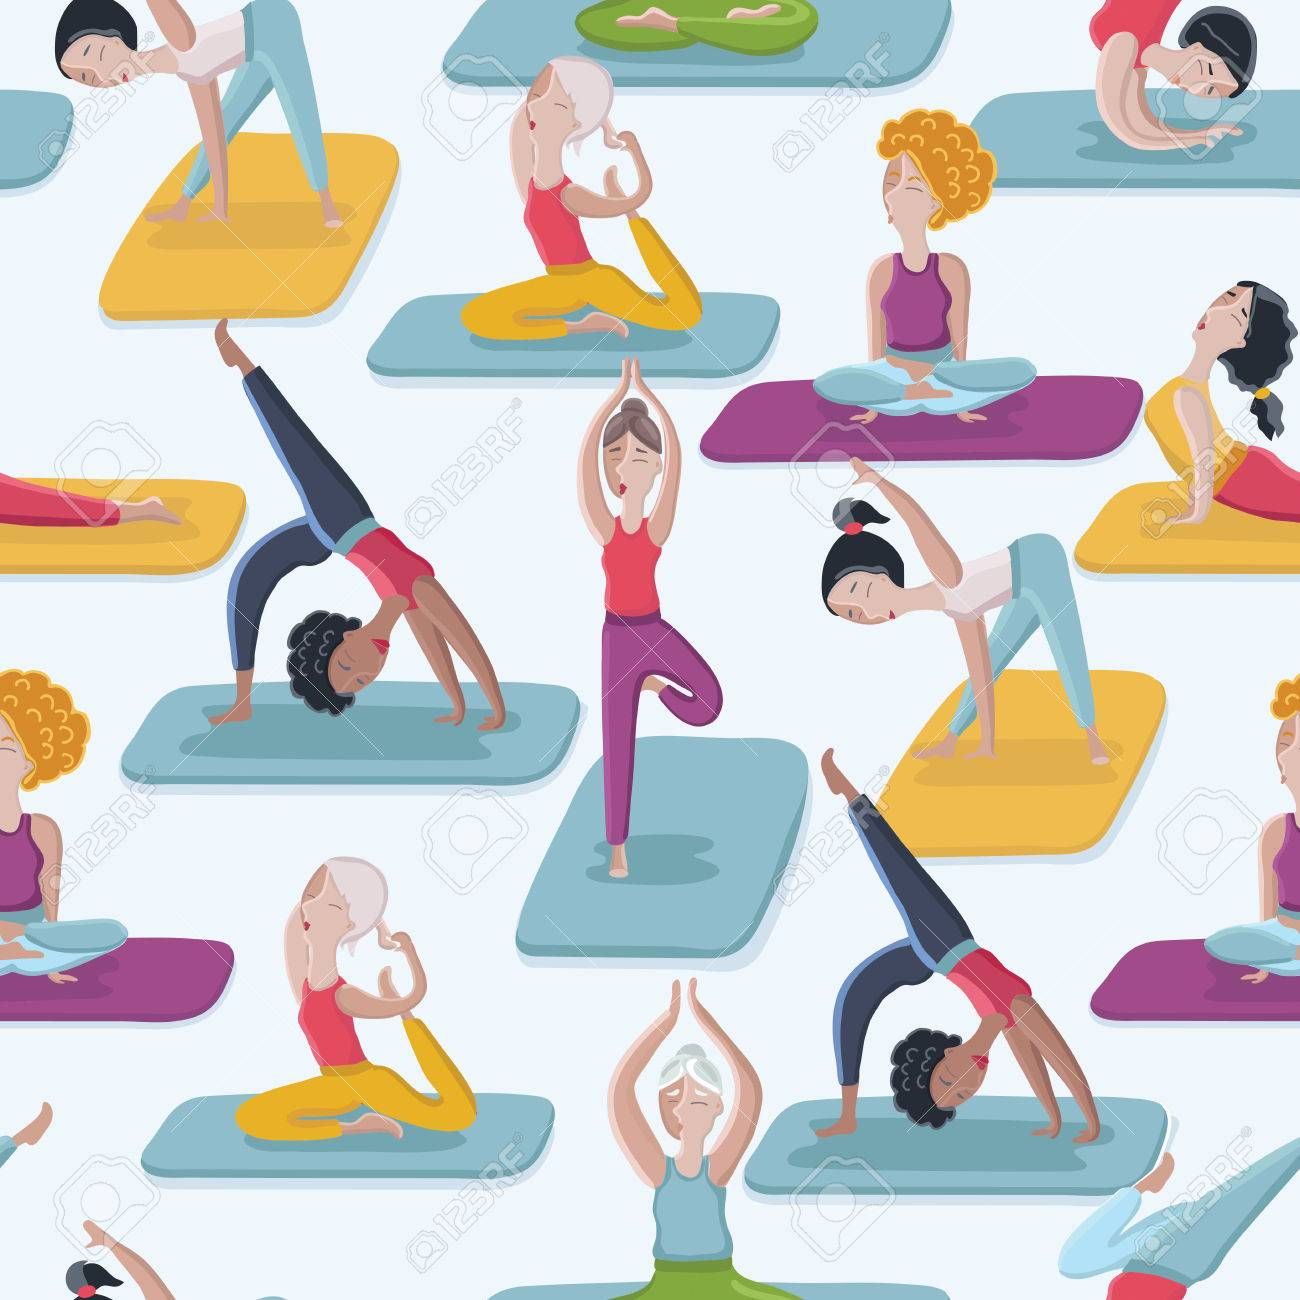 Vector Cartoon Funny Seamles Comic Yoga Poses Seamless Pattern